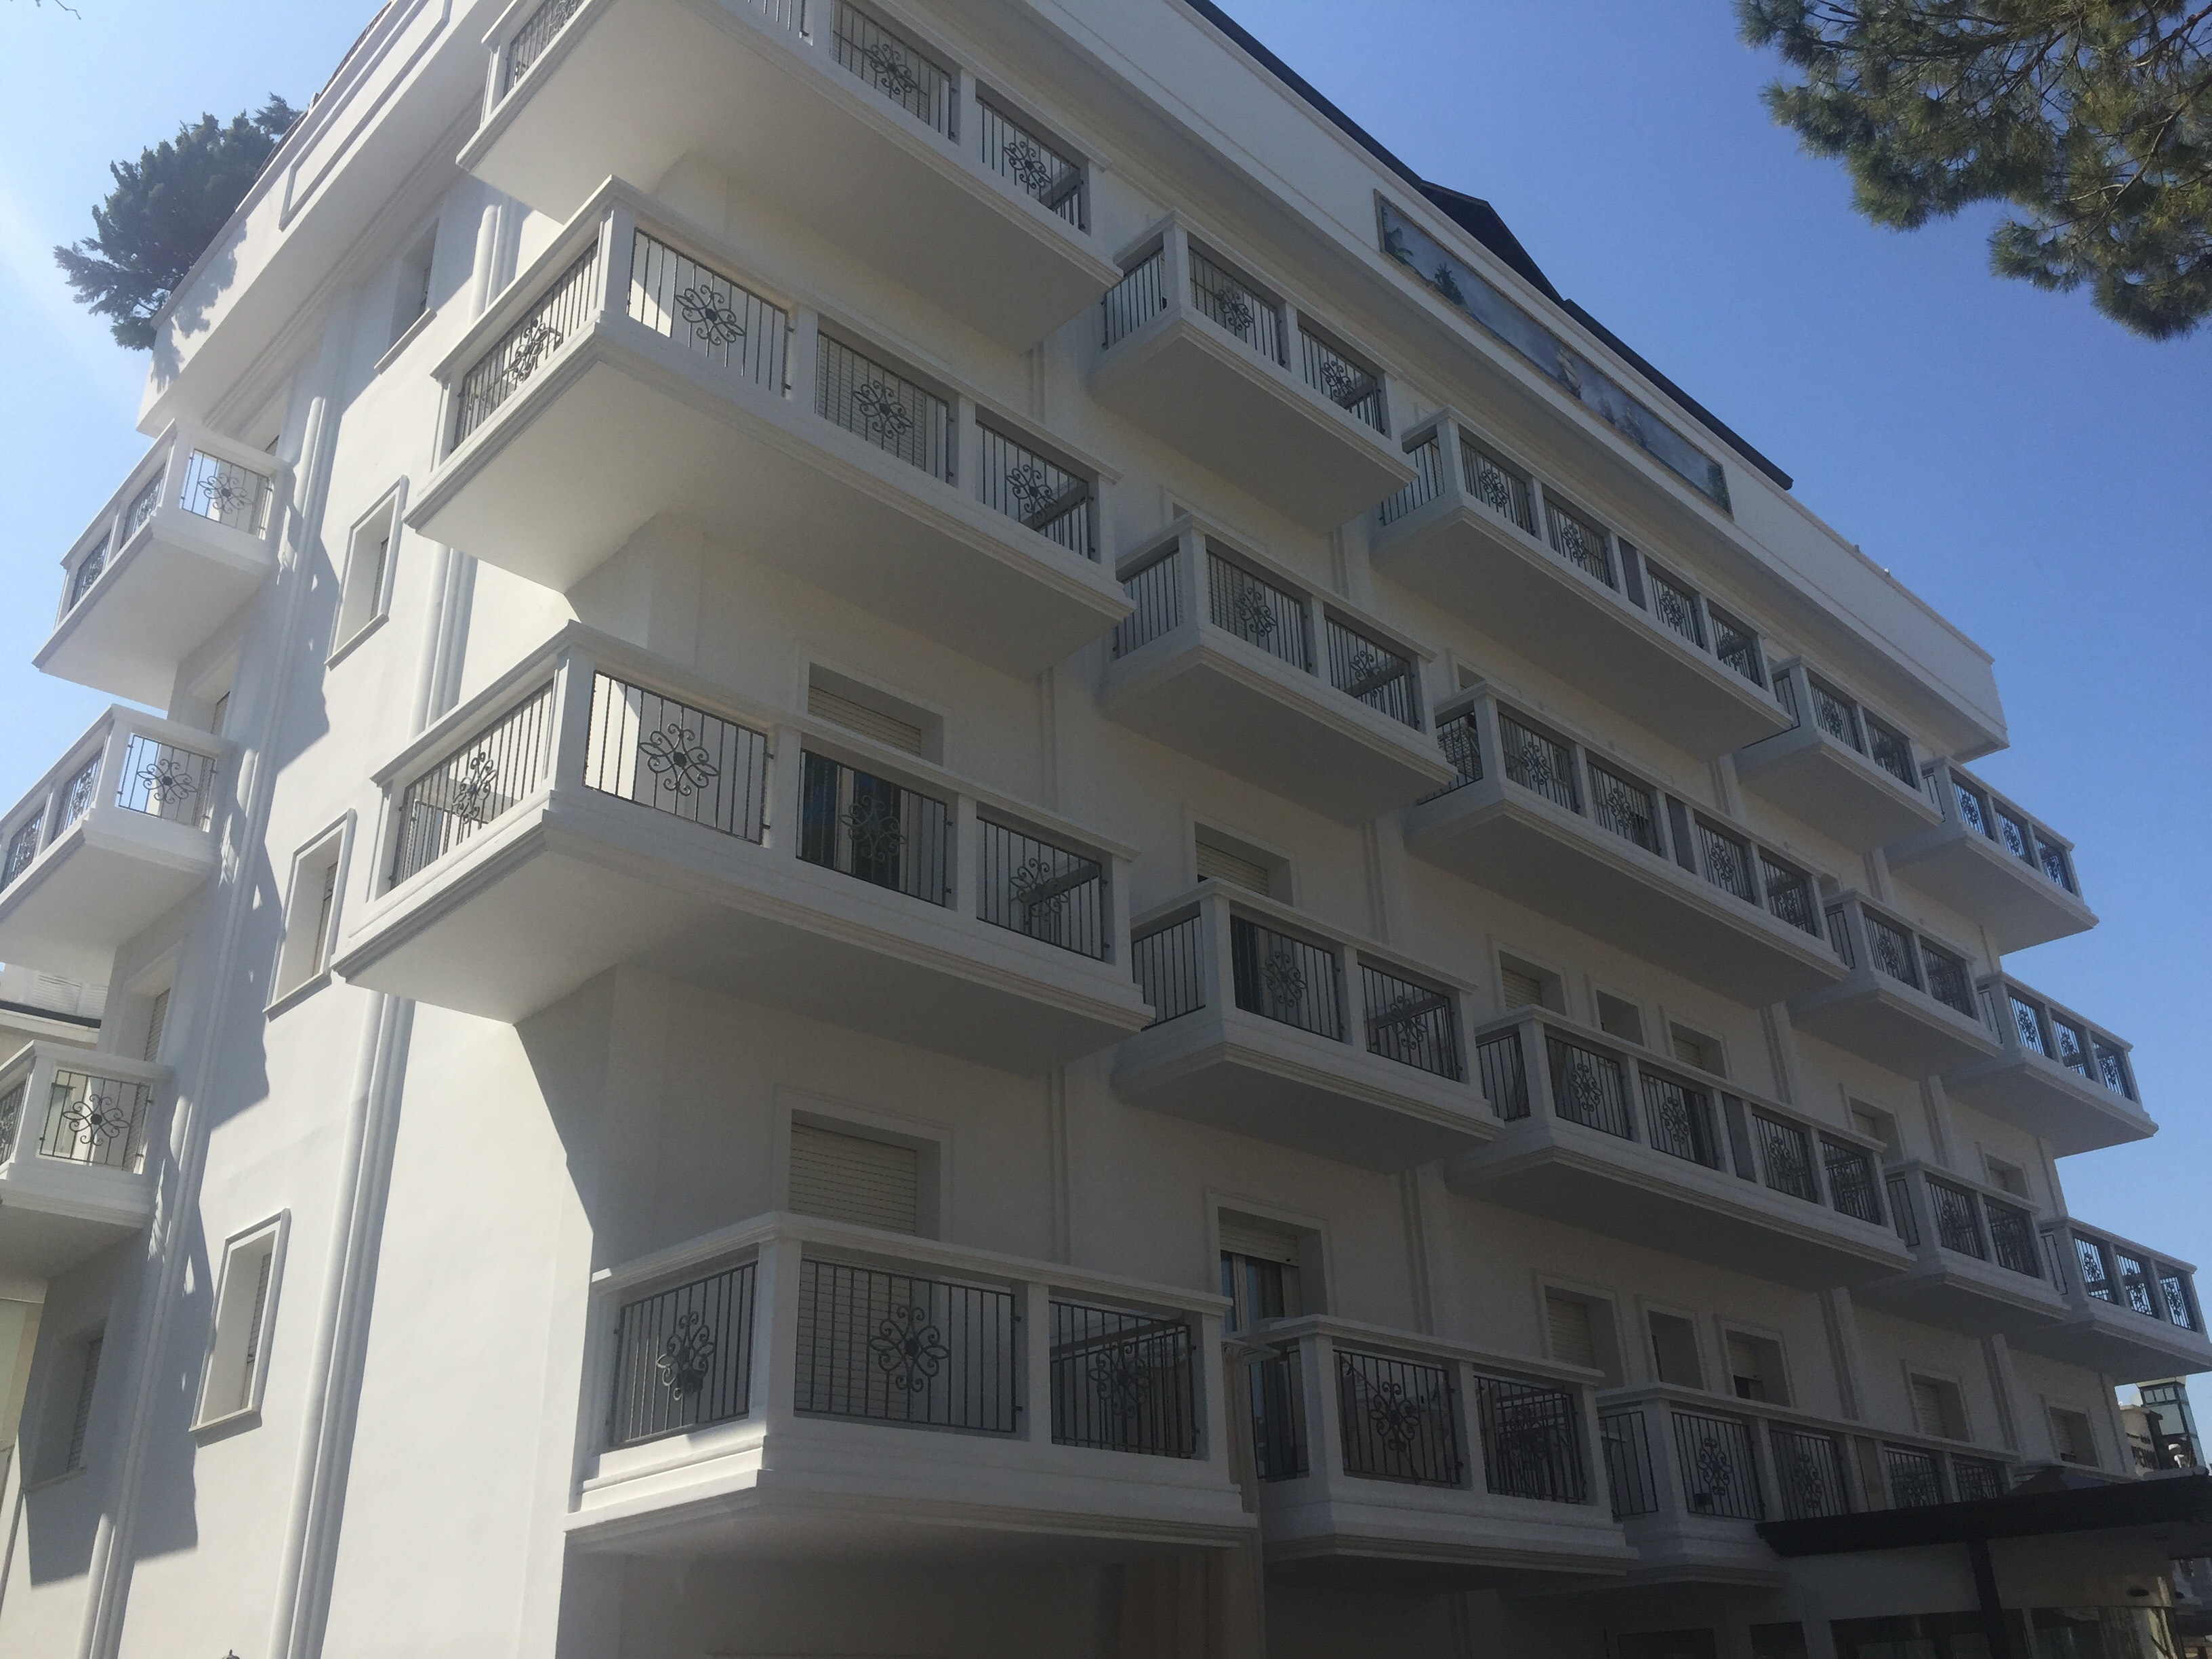 Residence per famiglie a Riccione relax